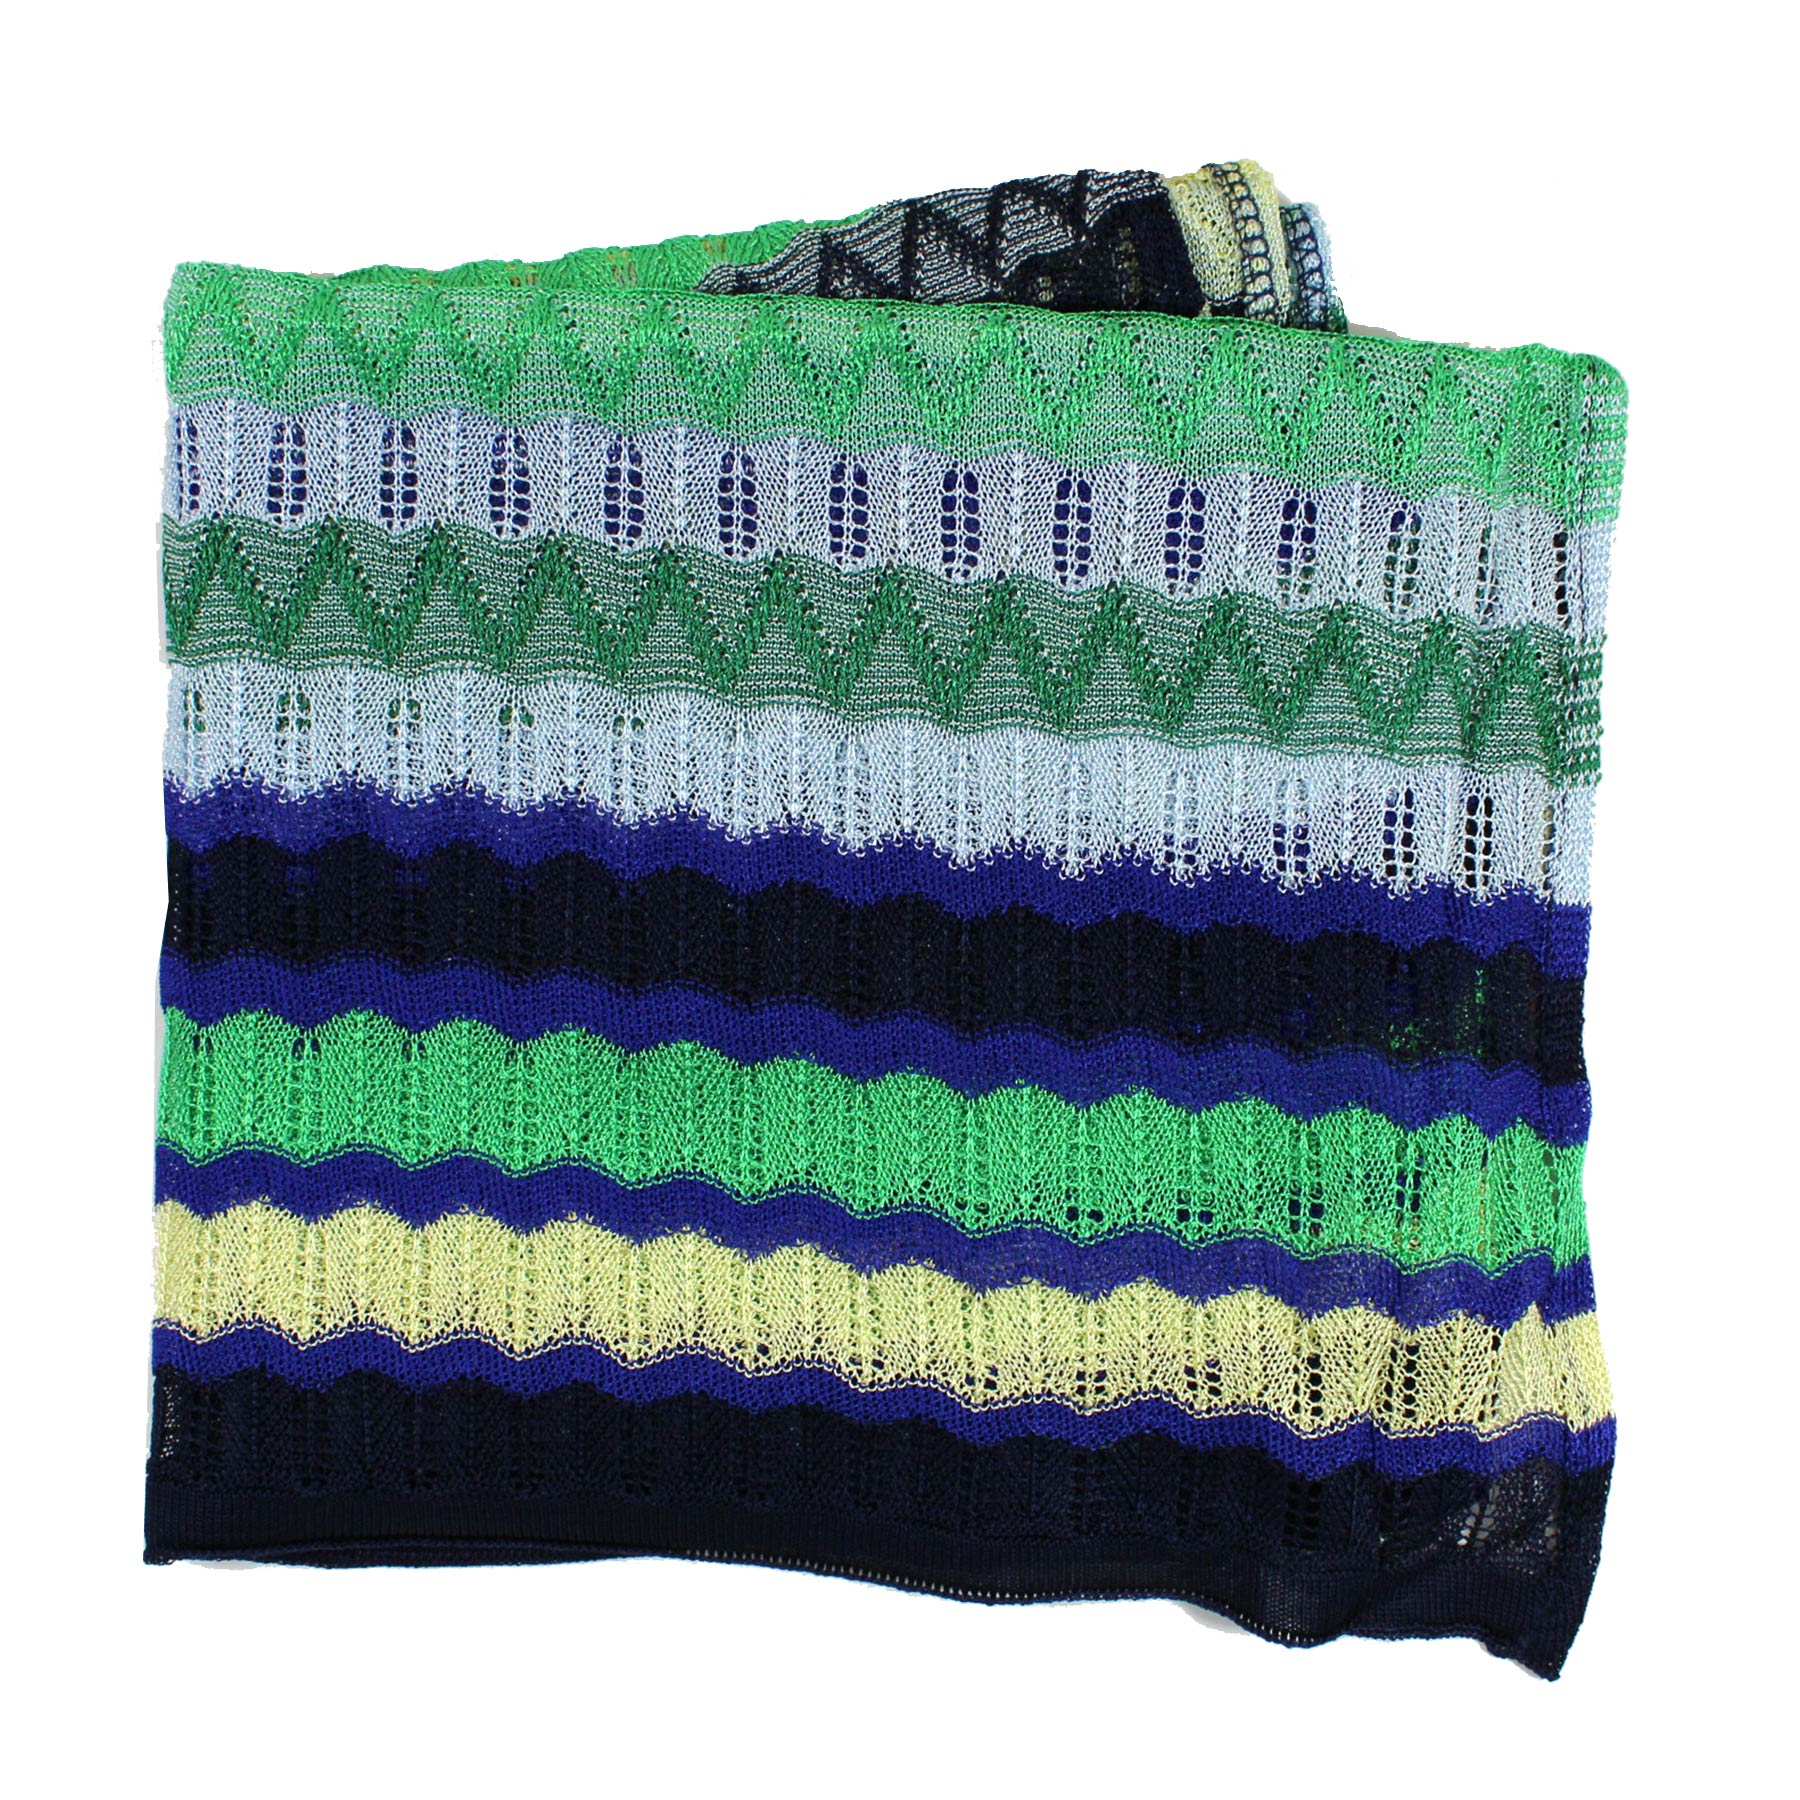 Missoni Scarf Green Purple Eyelet Knit Design Women Designer Shawl